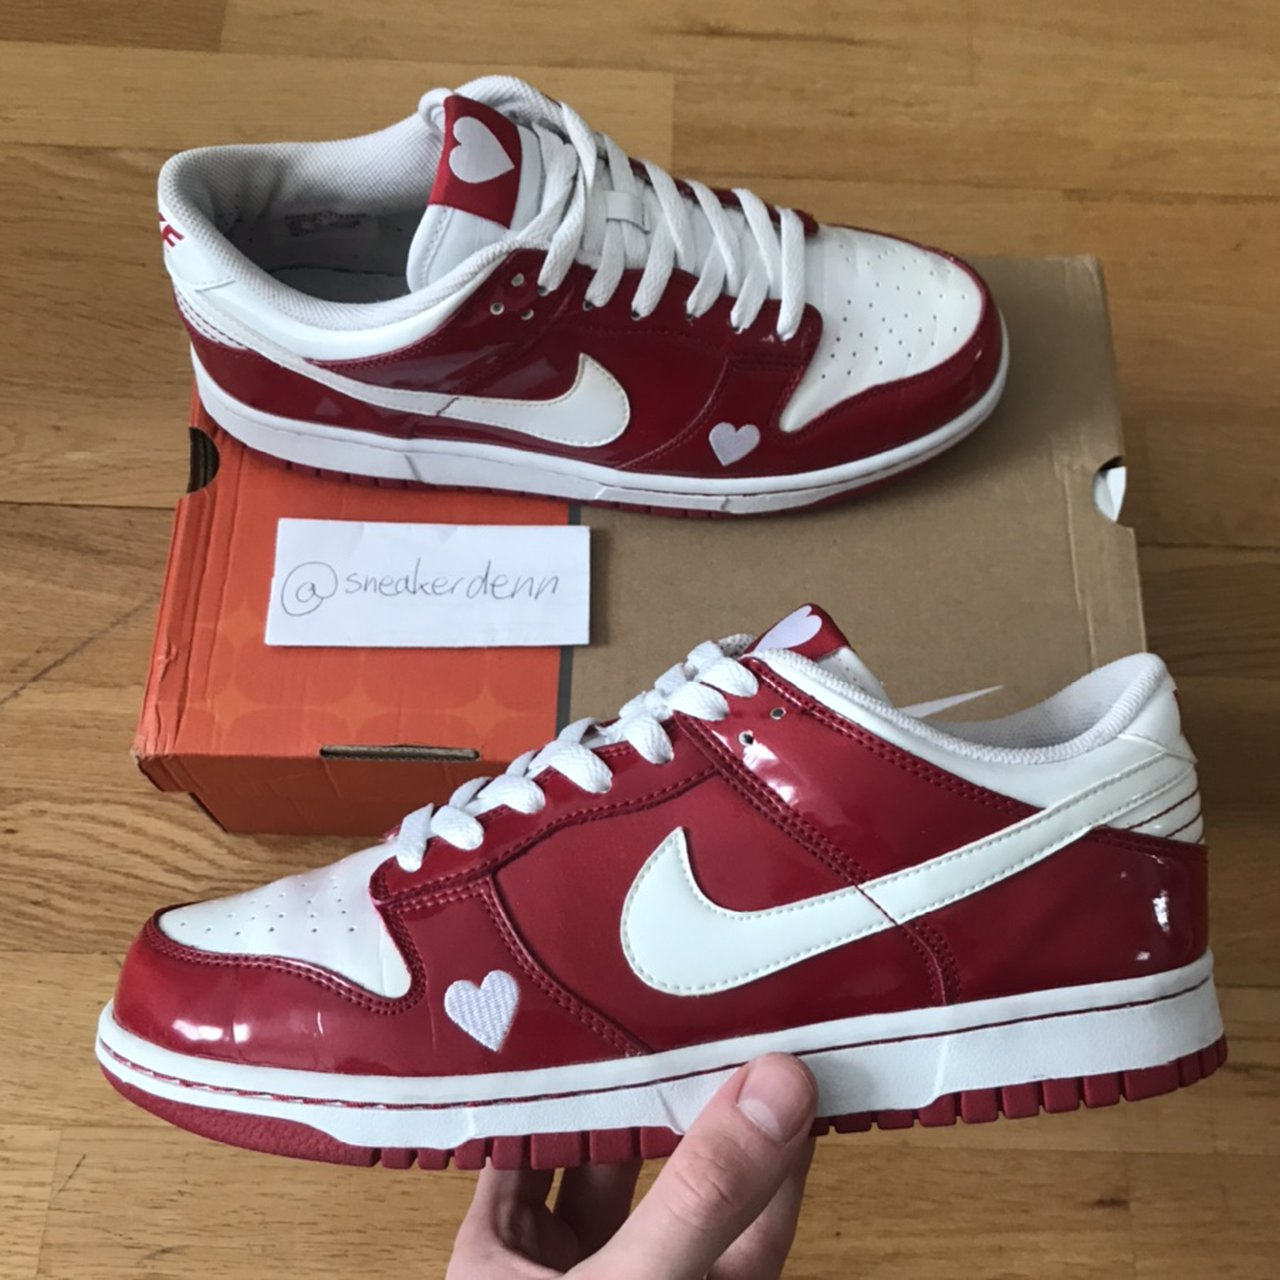 Nike Dunk Low Valentine's Day (2004